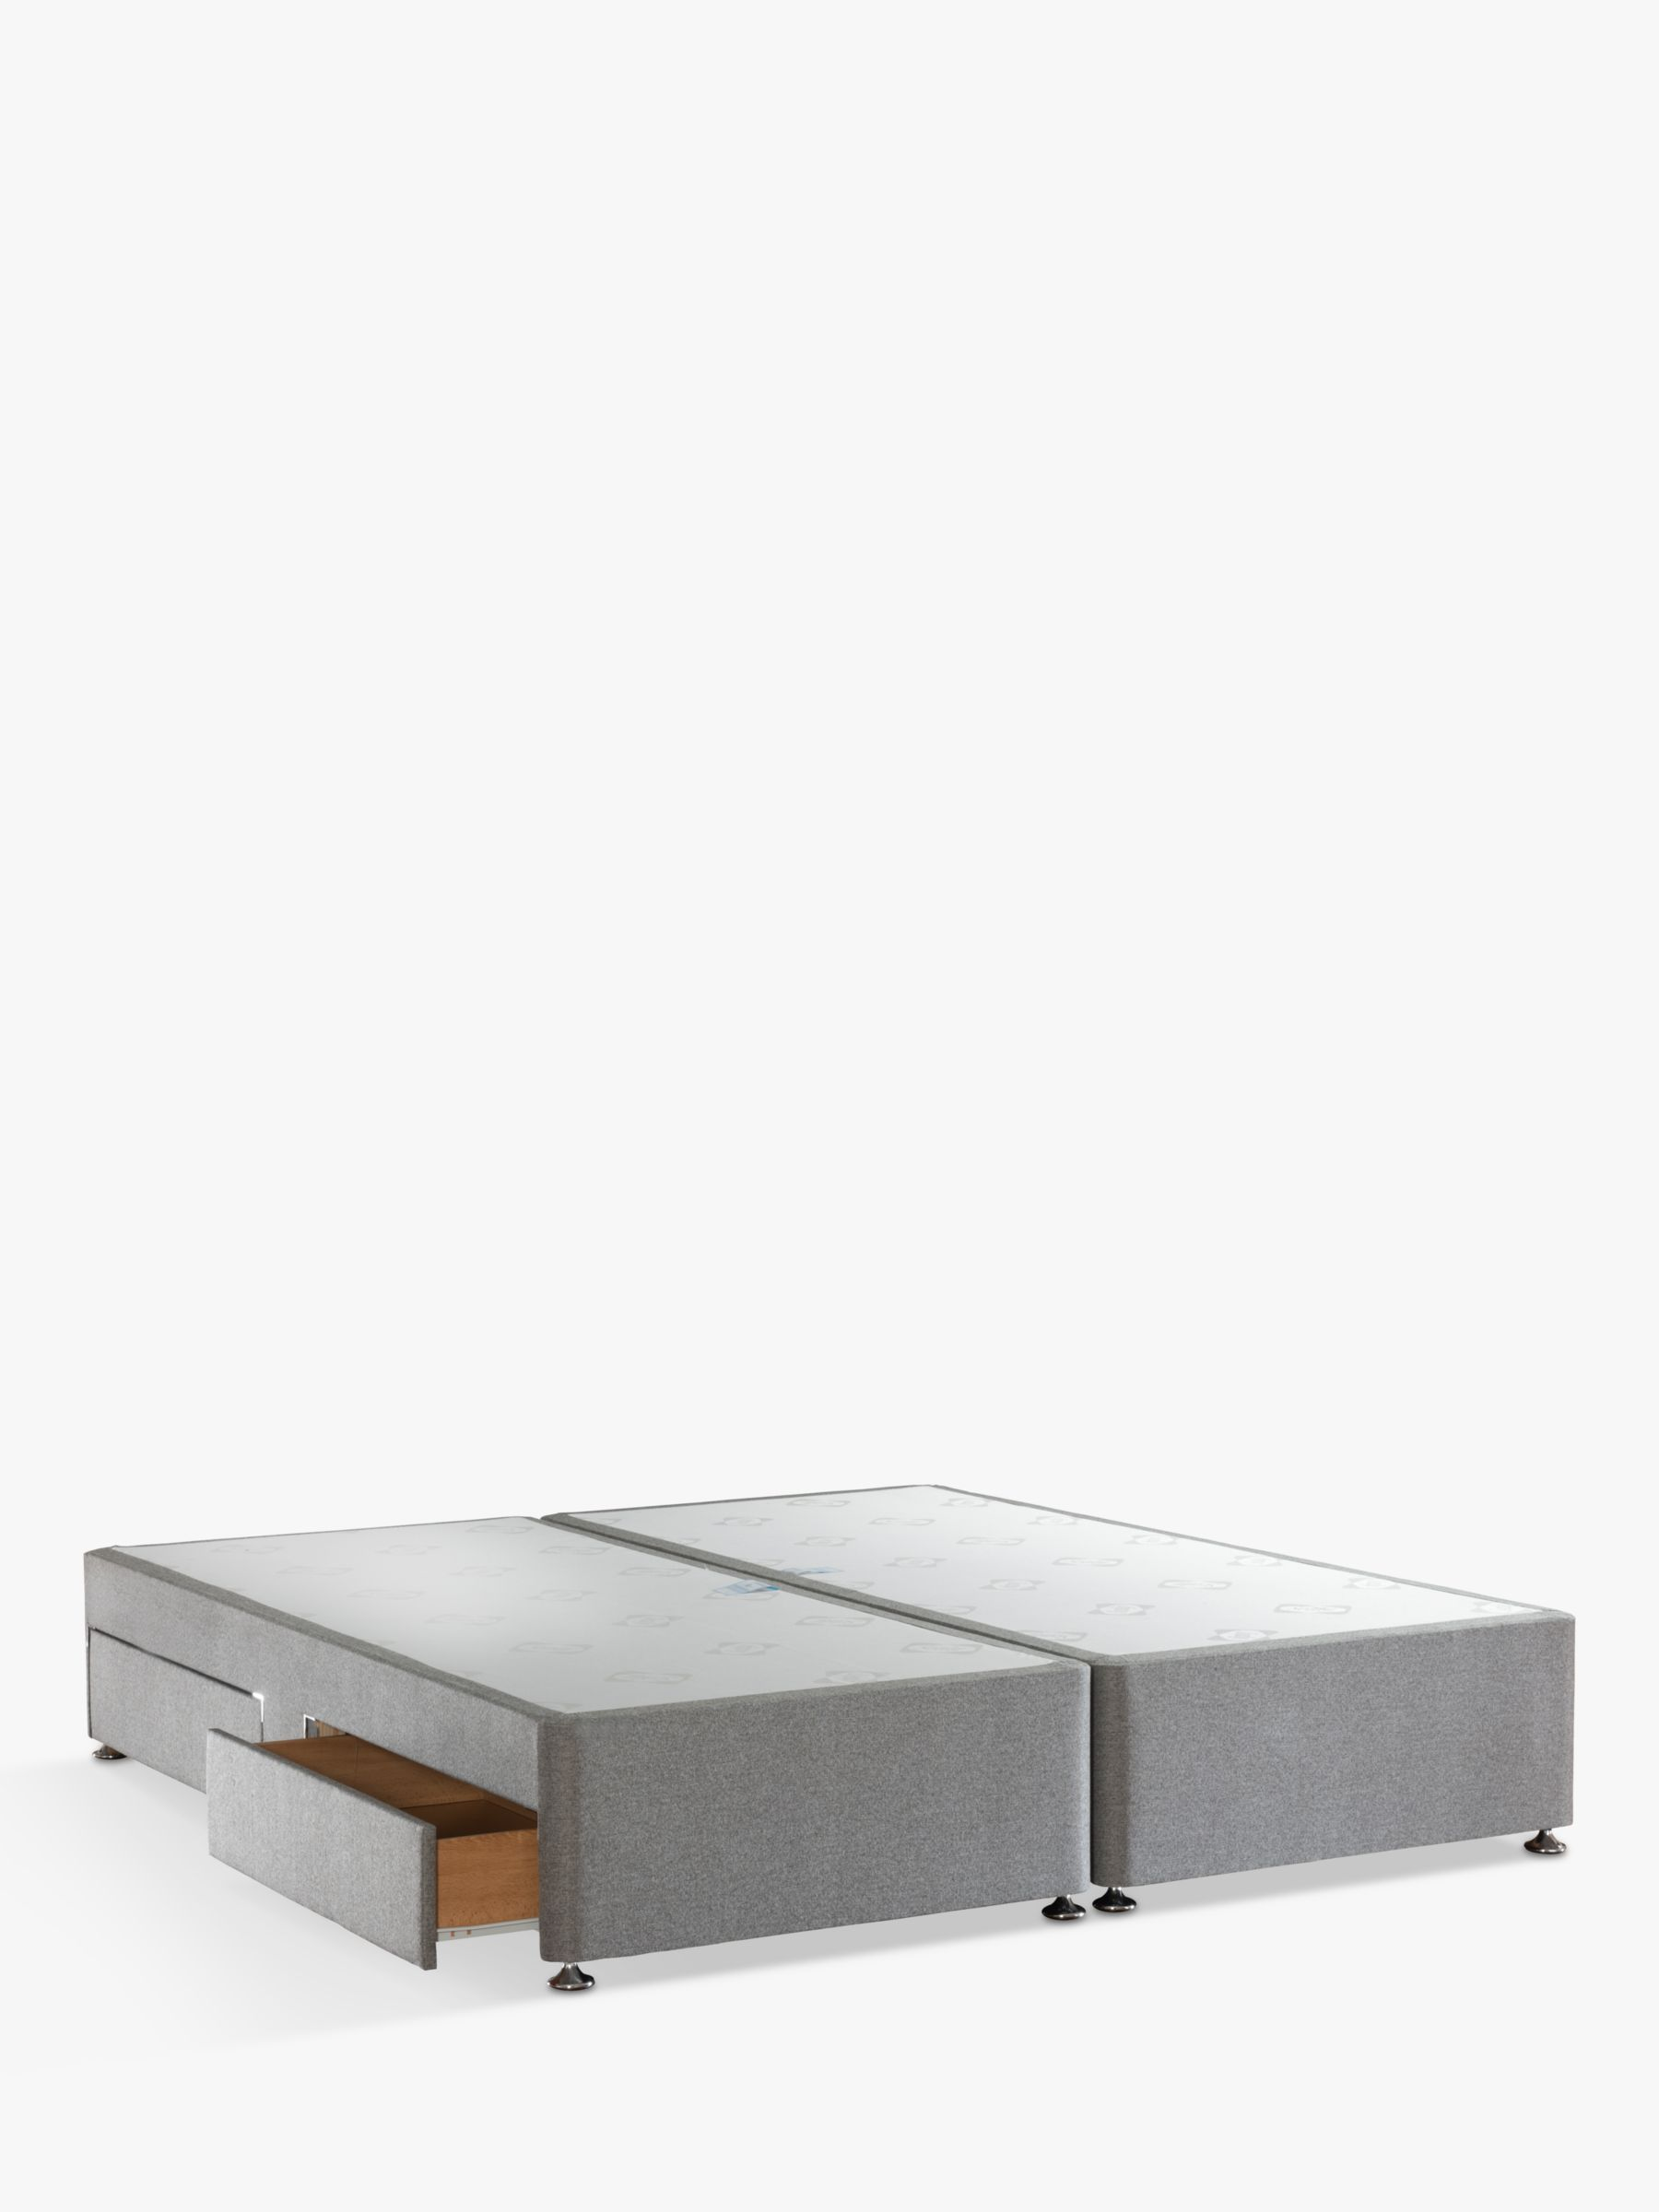 Sealy Sealy Posturepedic 4 Drawer Divan Storage Bed, Super King Size